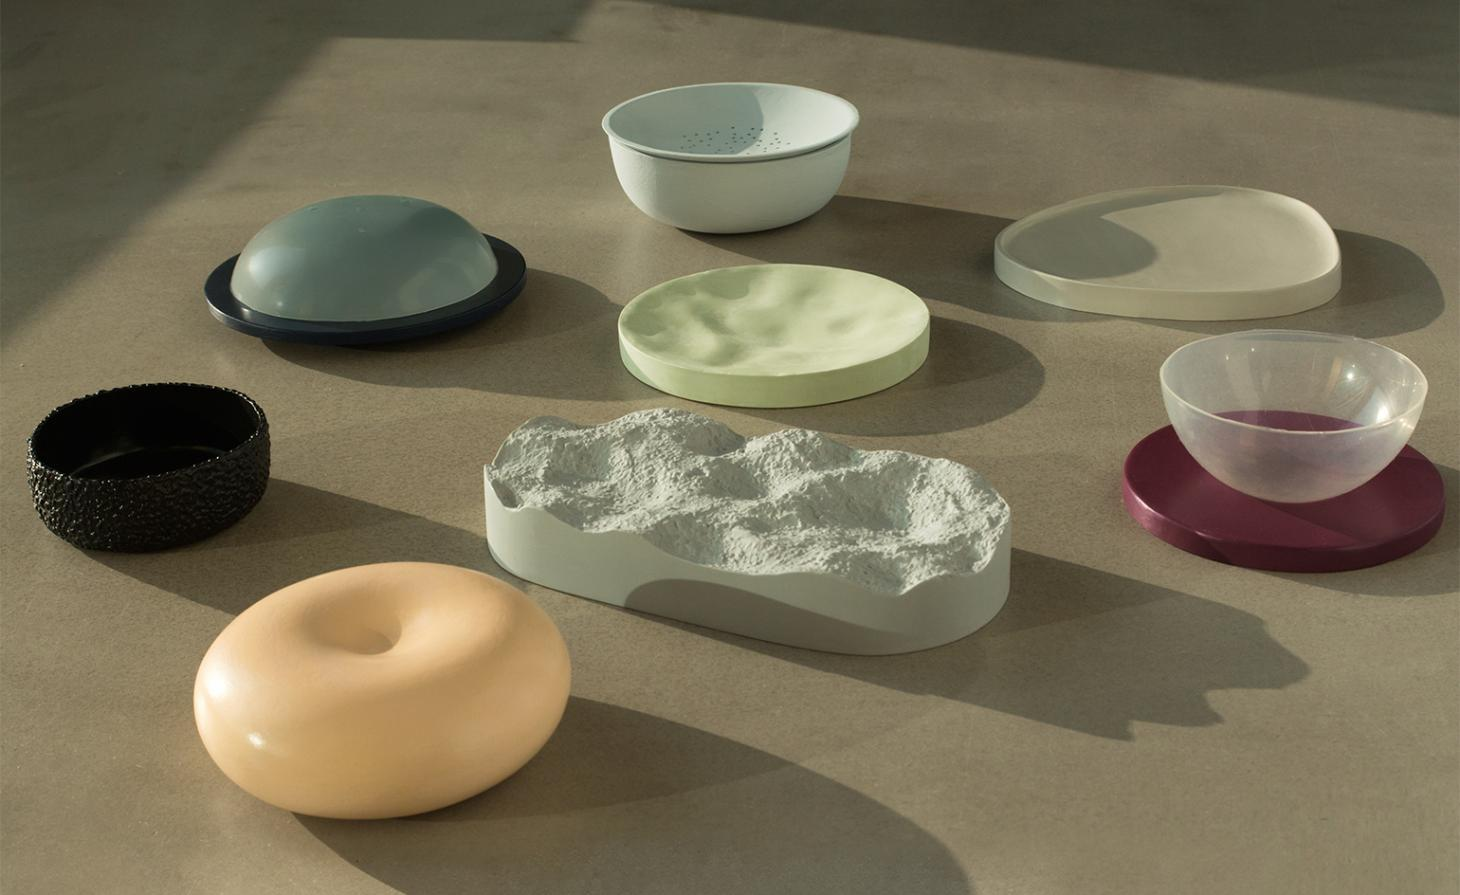 'Beyond Taste – A Multi-sensorial Series Of Tableware' a